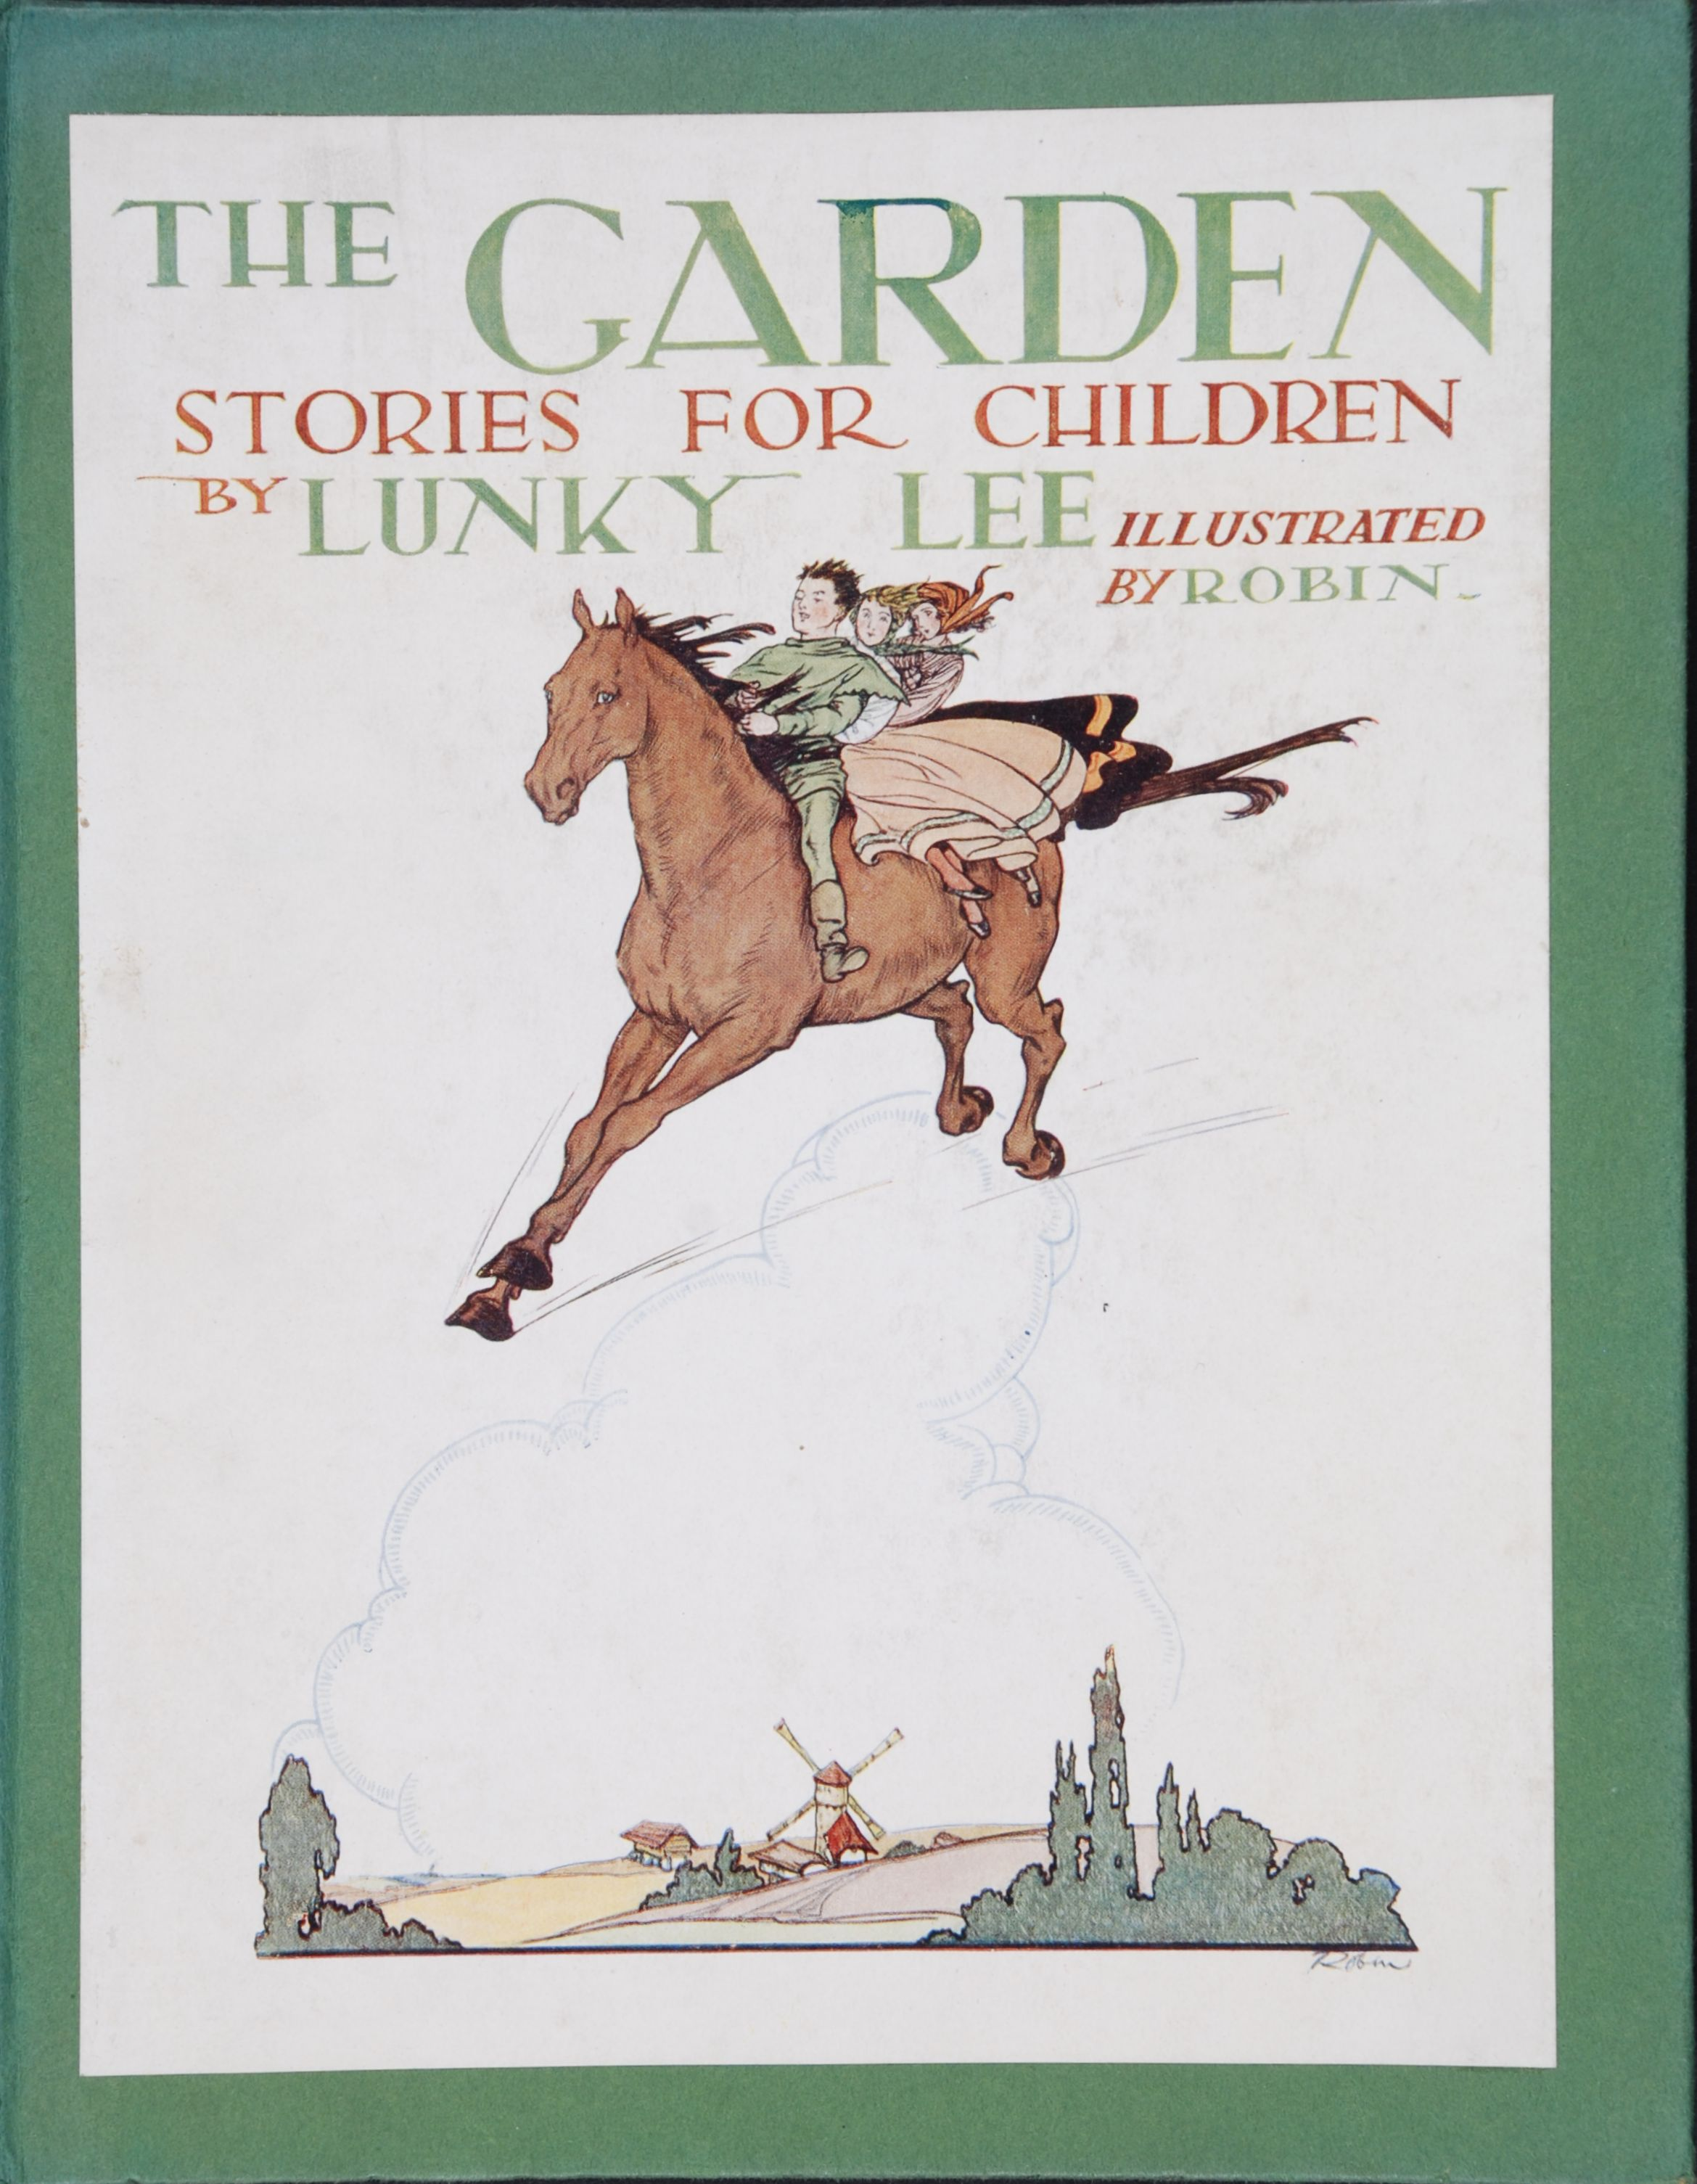 Lunky Lee. The Garden : stories for children. London: Sheed & Ward [1927].